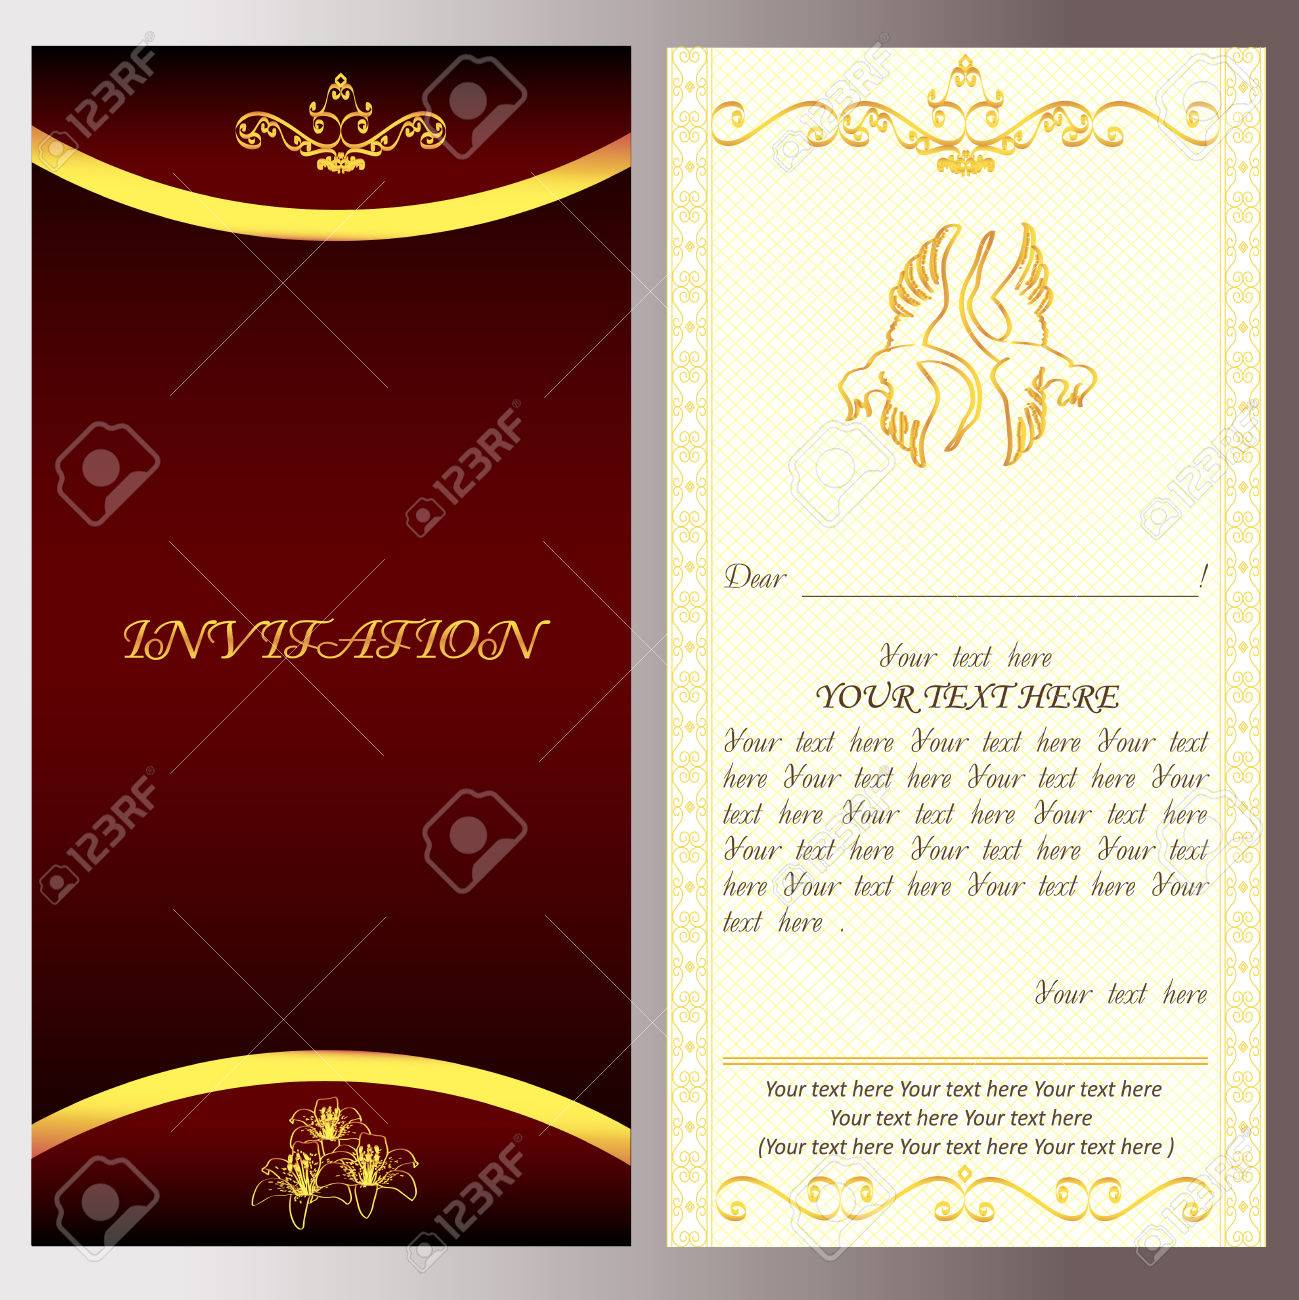 Golden Invitation For Holiday Card With Text Vector Easy To